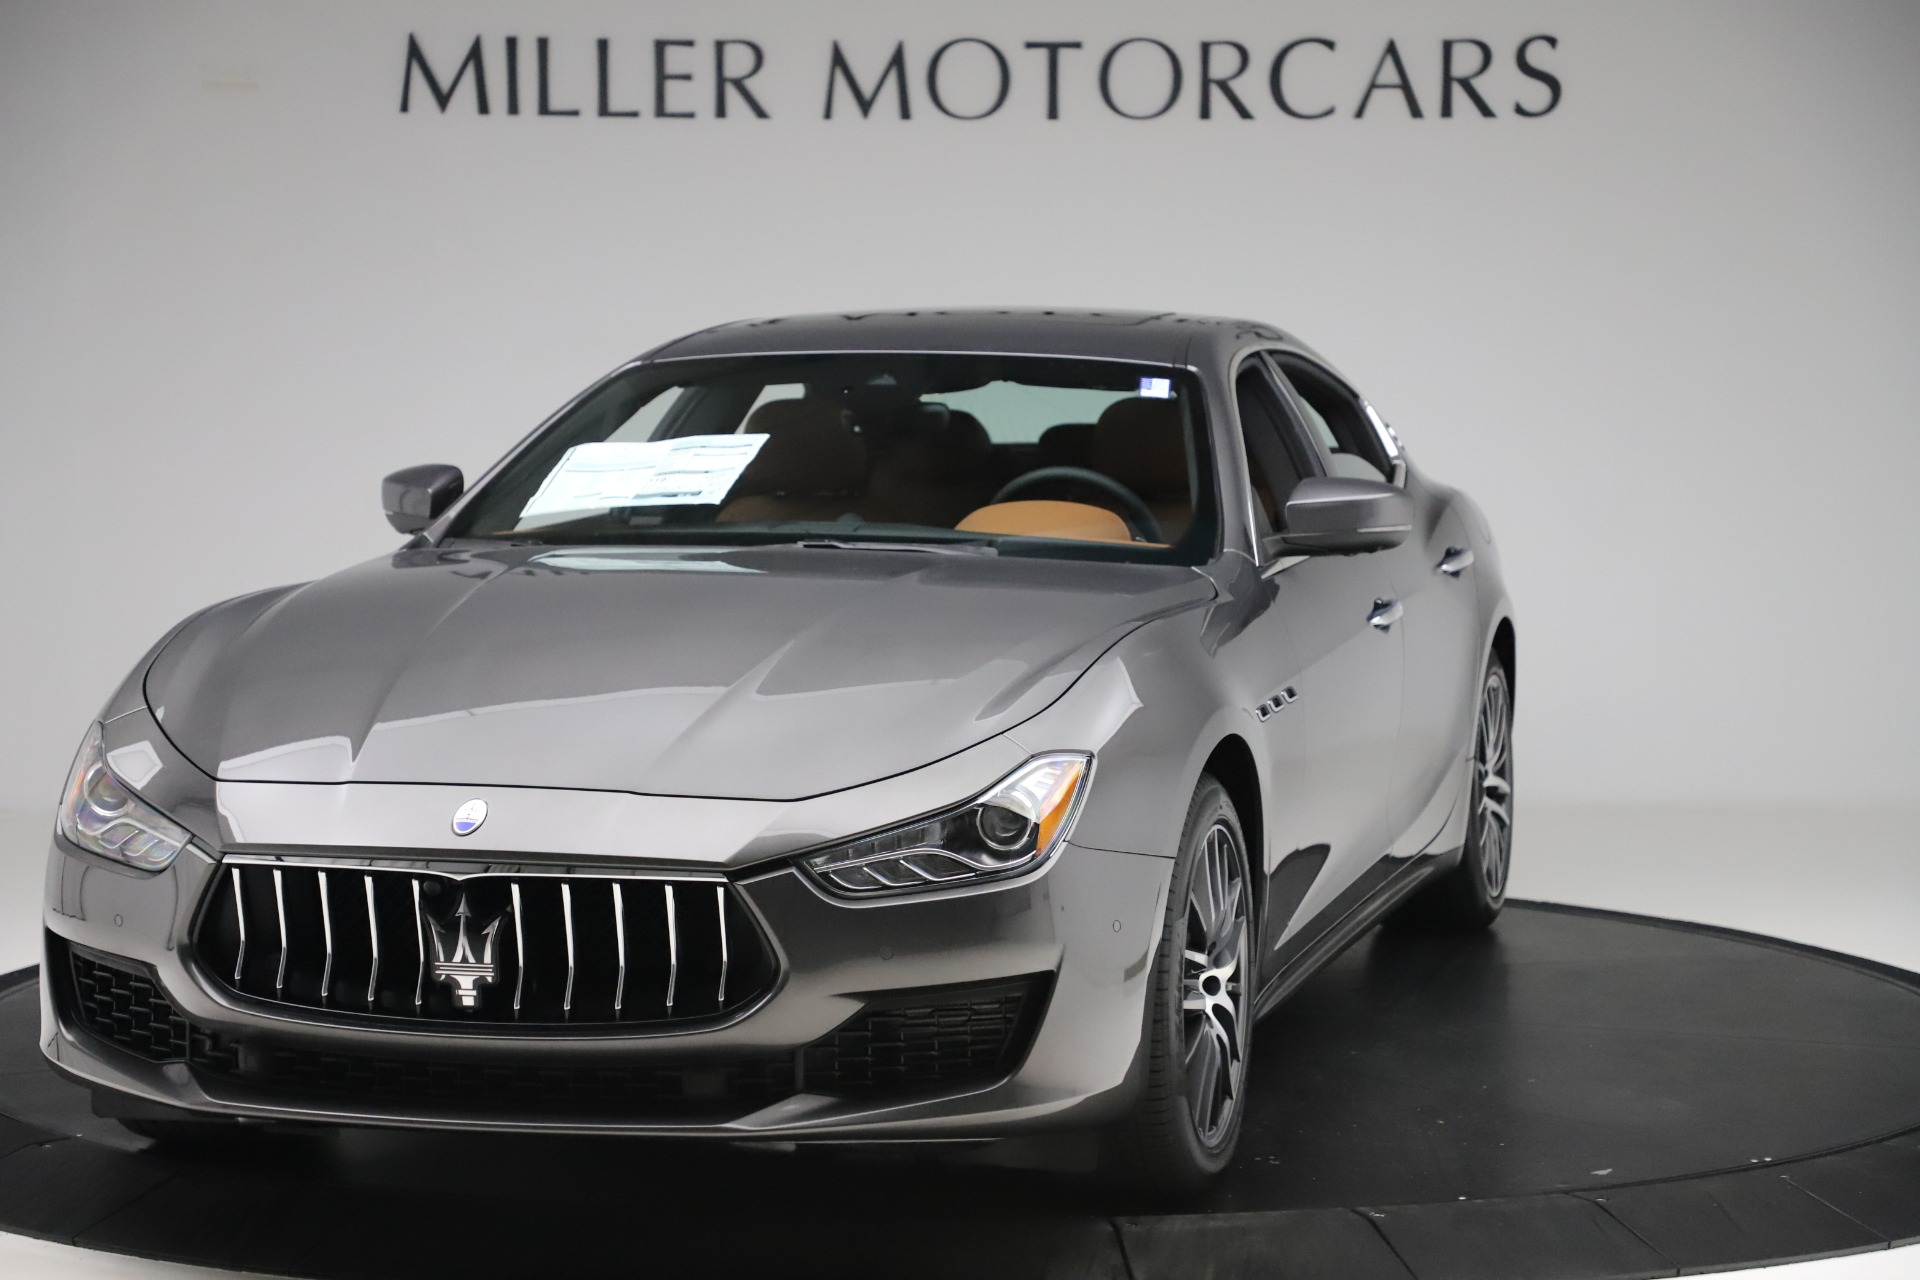 Used 2019 Maserati Ghibli S Q4 for sale $61,900 at Rolls-Royce Motor Cars Greenwich in Greenwich CT 06830 1